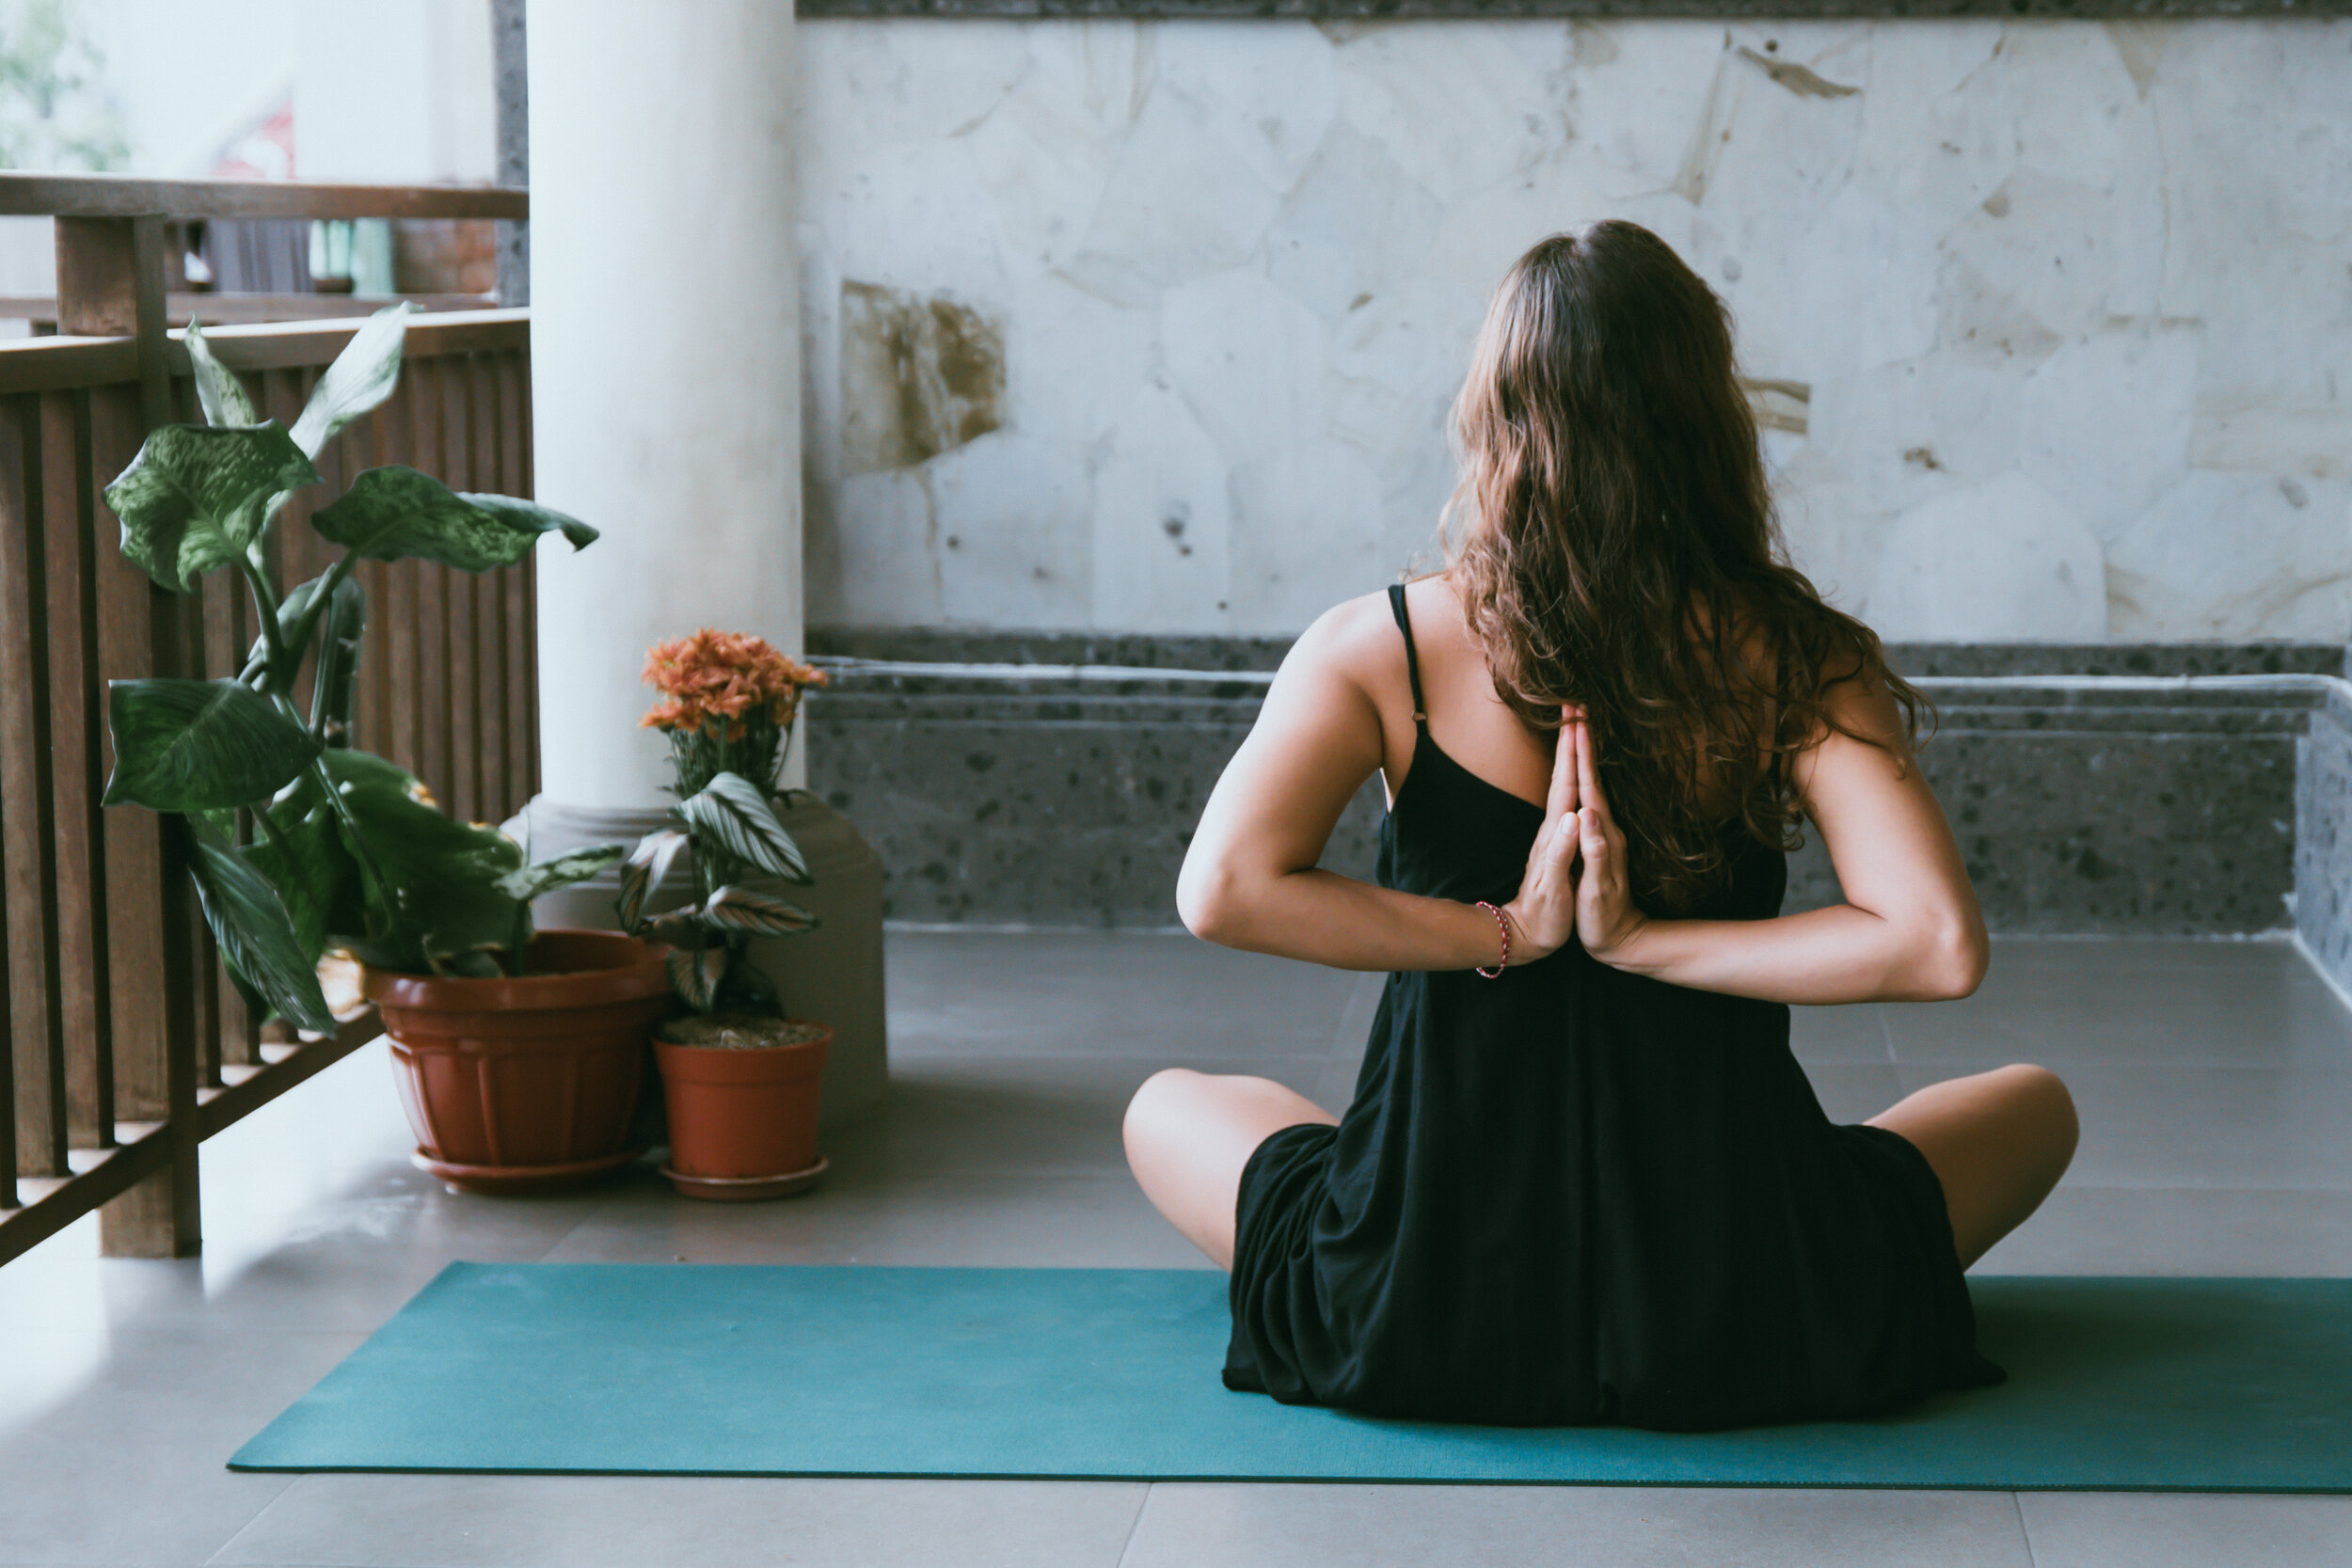 $100 - 60 Minute Private Group Yoga Session$100 for 1-10 people + $10 Per Person after 10.